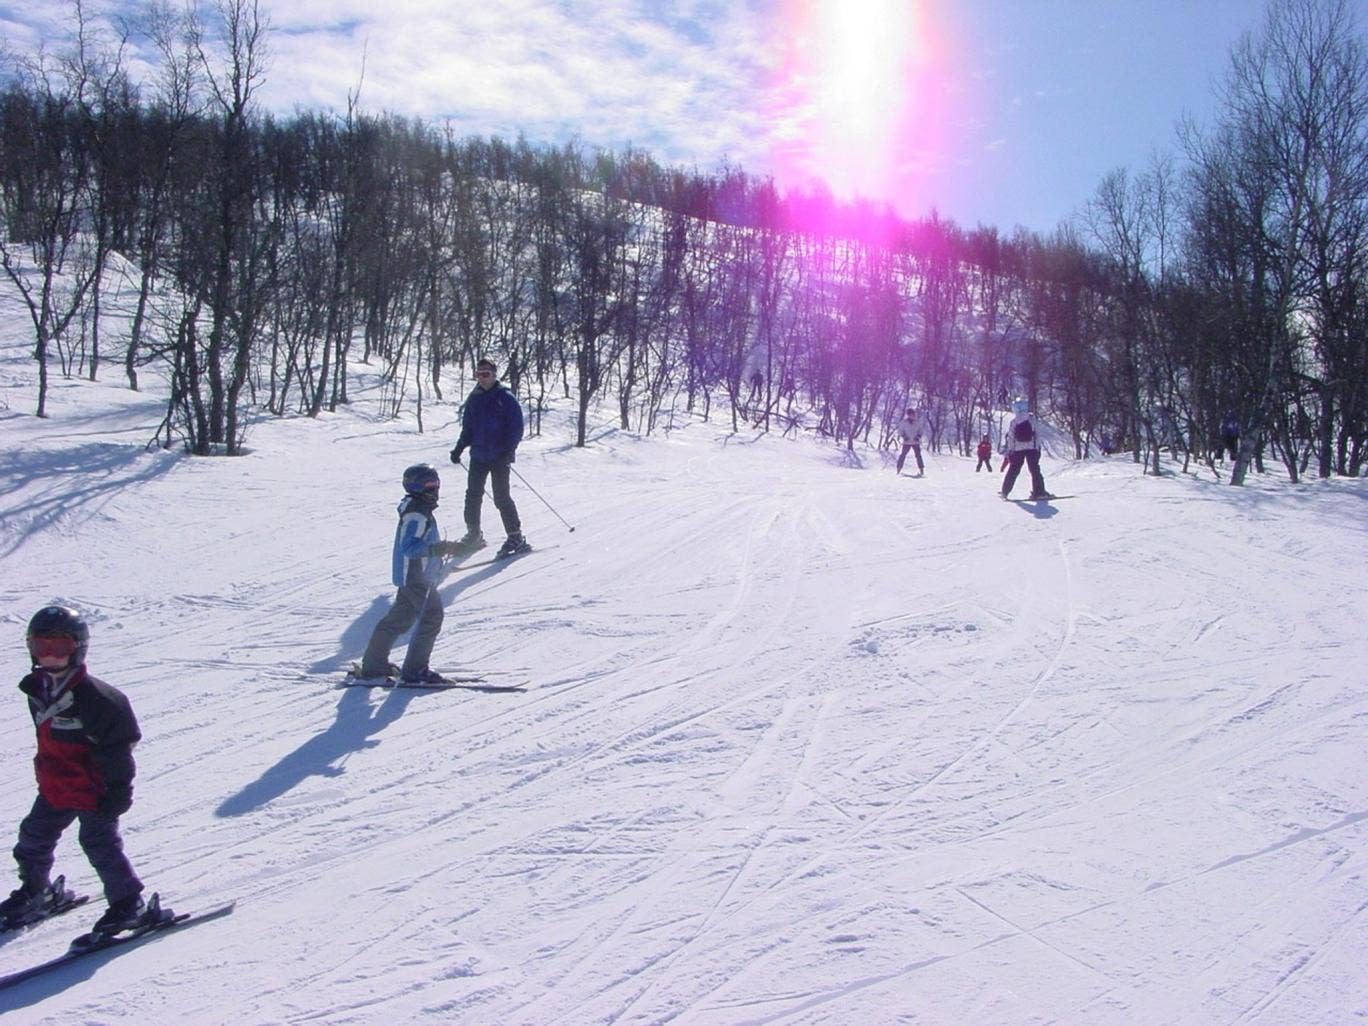 Family fortune: Geilo in Norway